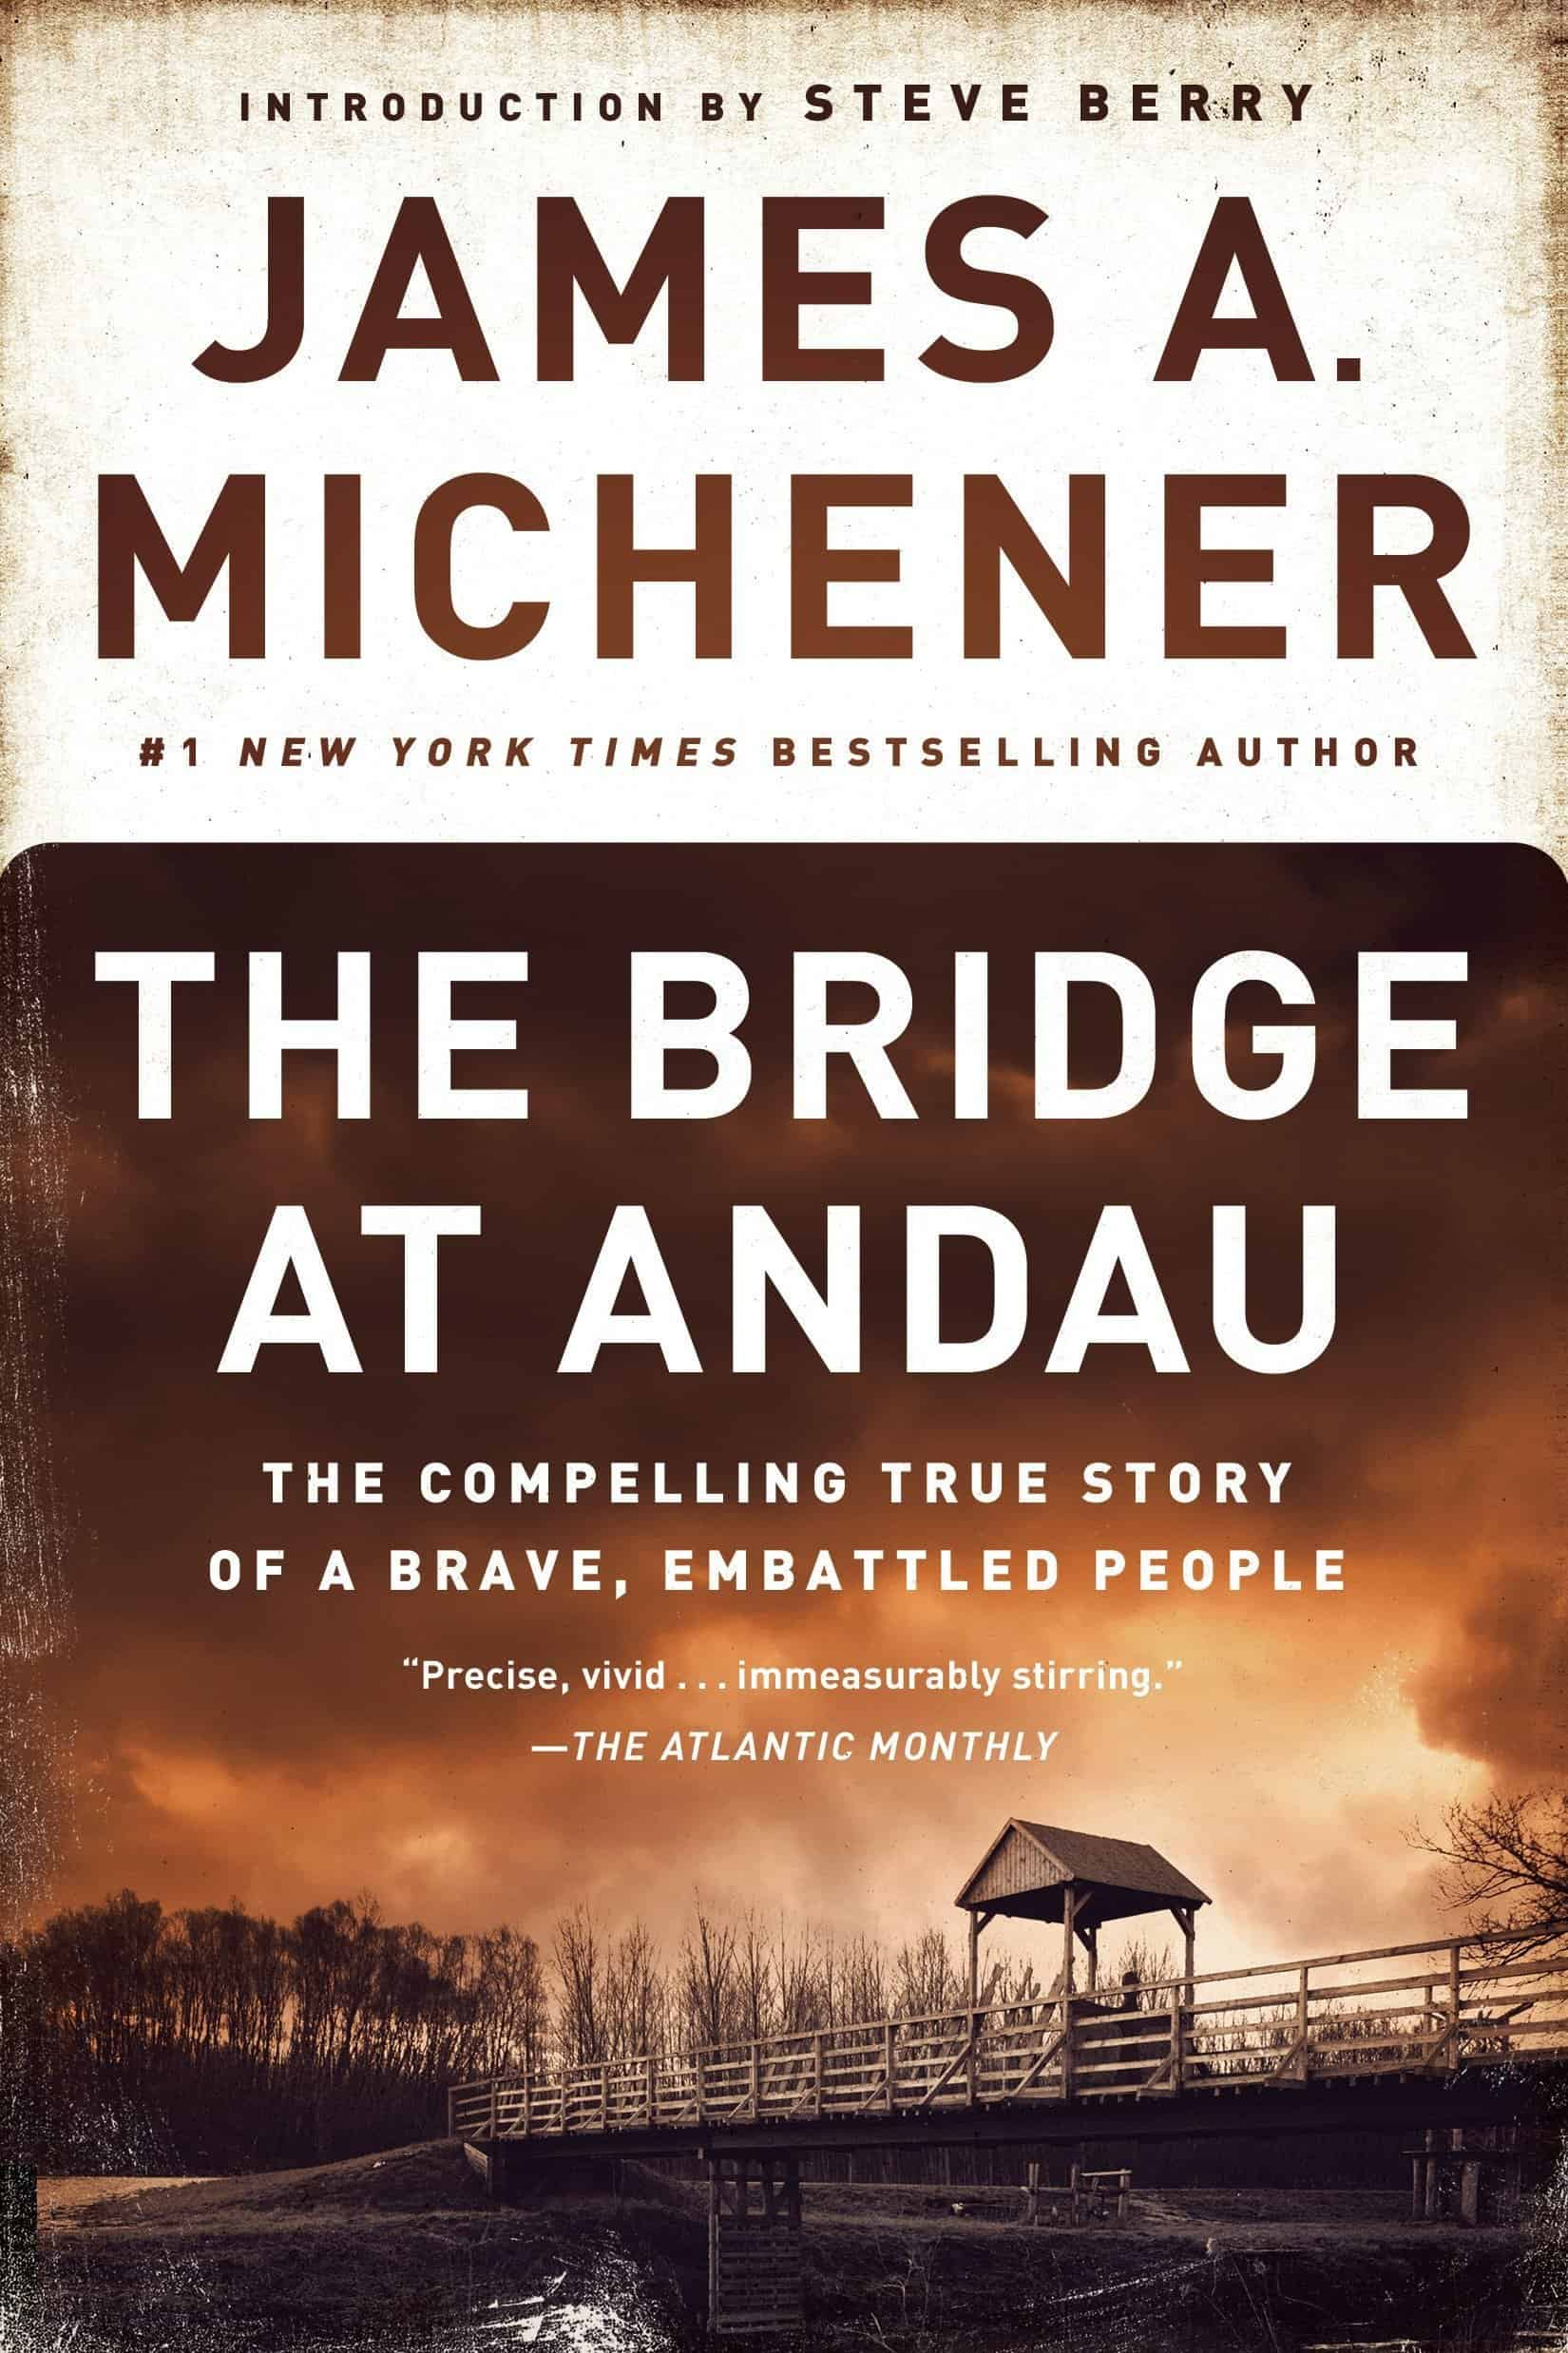 The Bridge at Andau, by James A. Michener